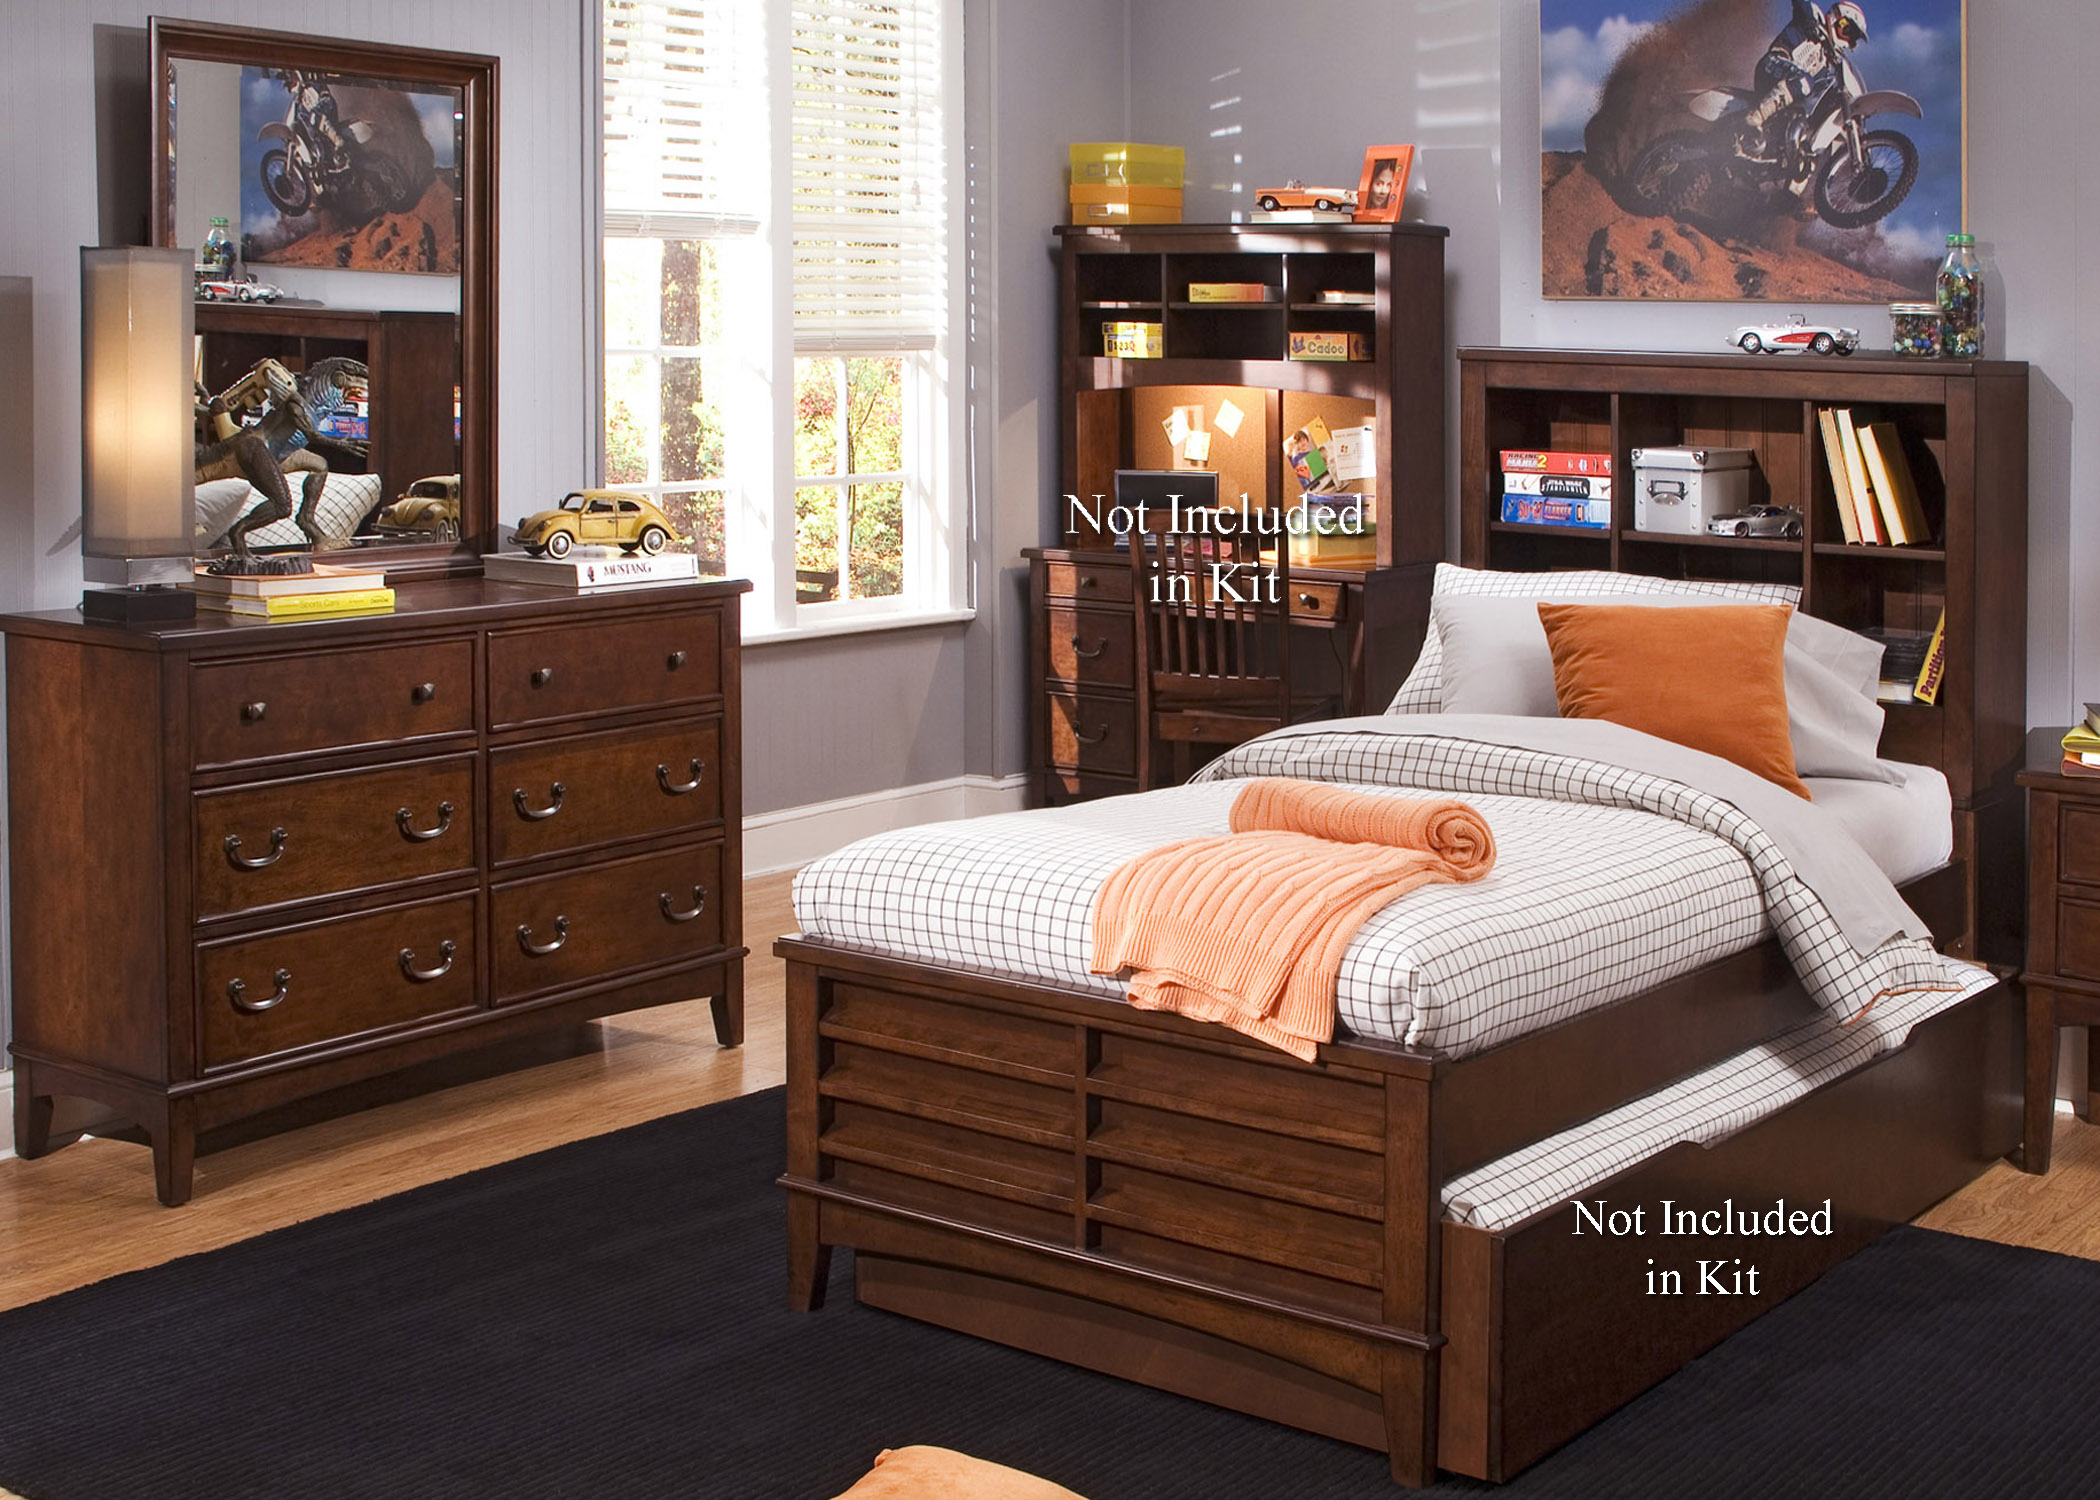 Liberty Furniture Chelsea Square Youth Bedroom Group - Item Number: 628-YBR-FBBDM